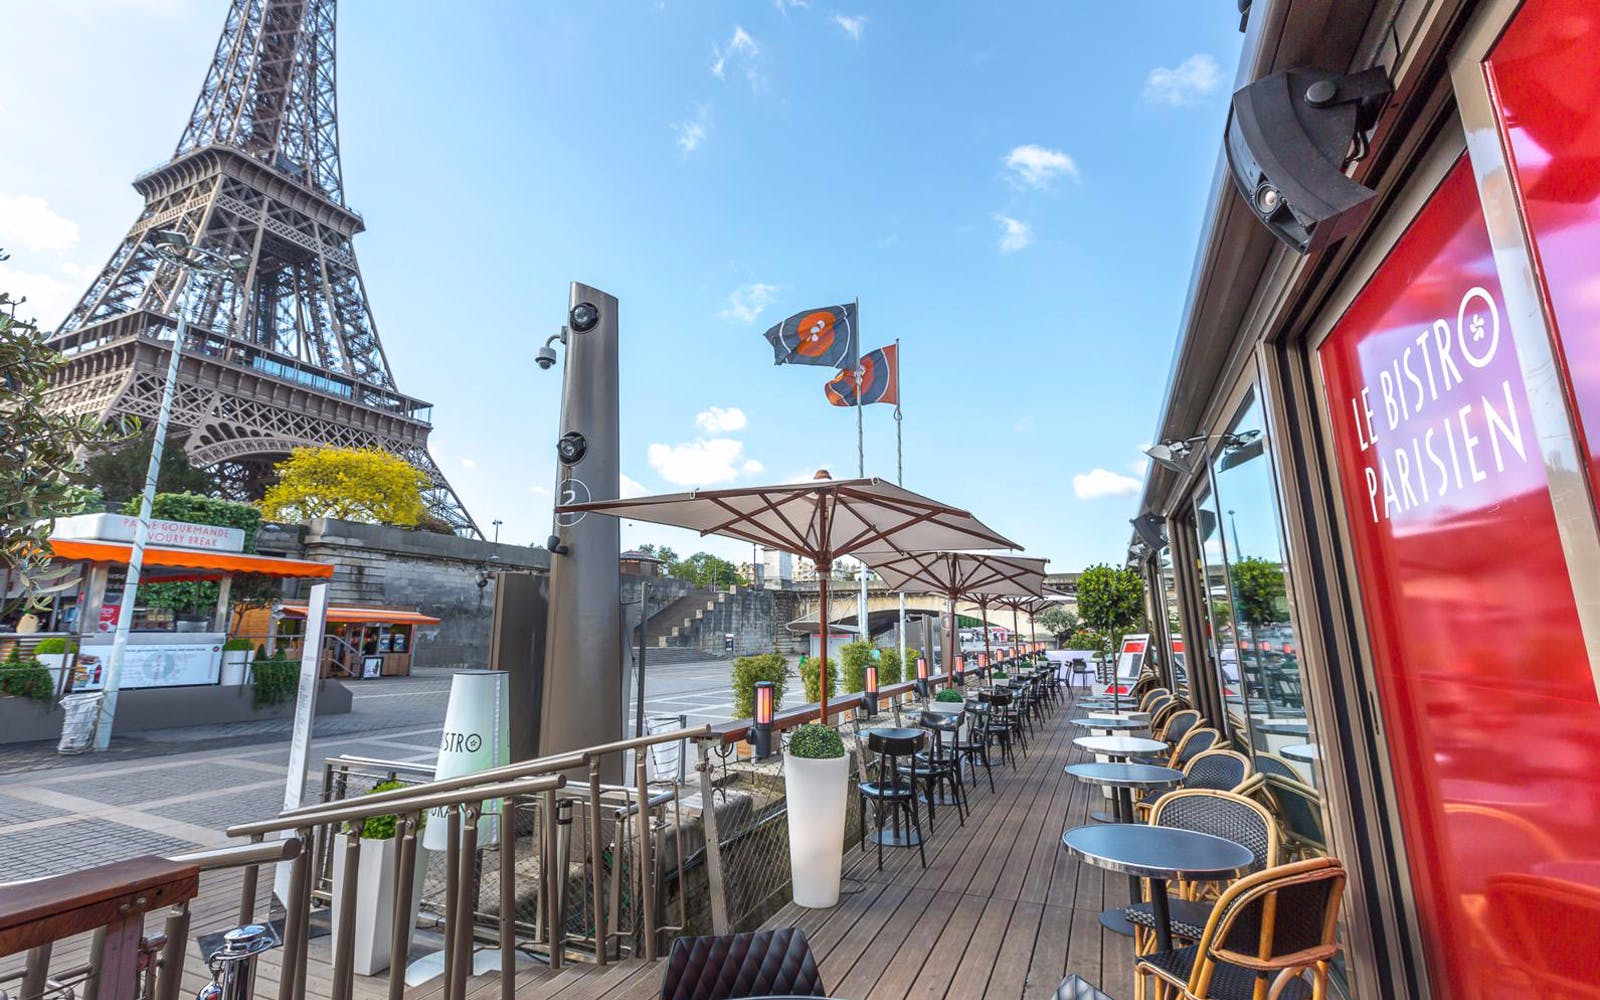 Lunch at Le Bistro Parisien + Optional Seine River Cruise